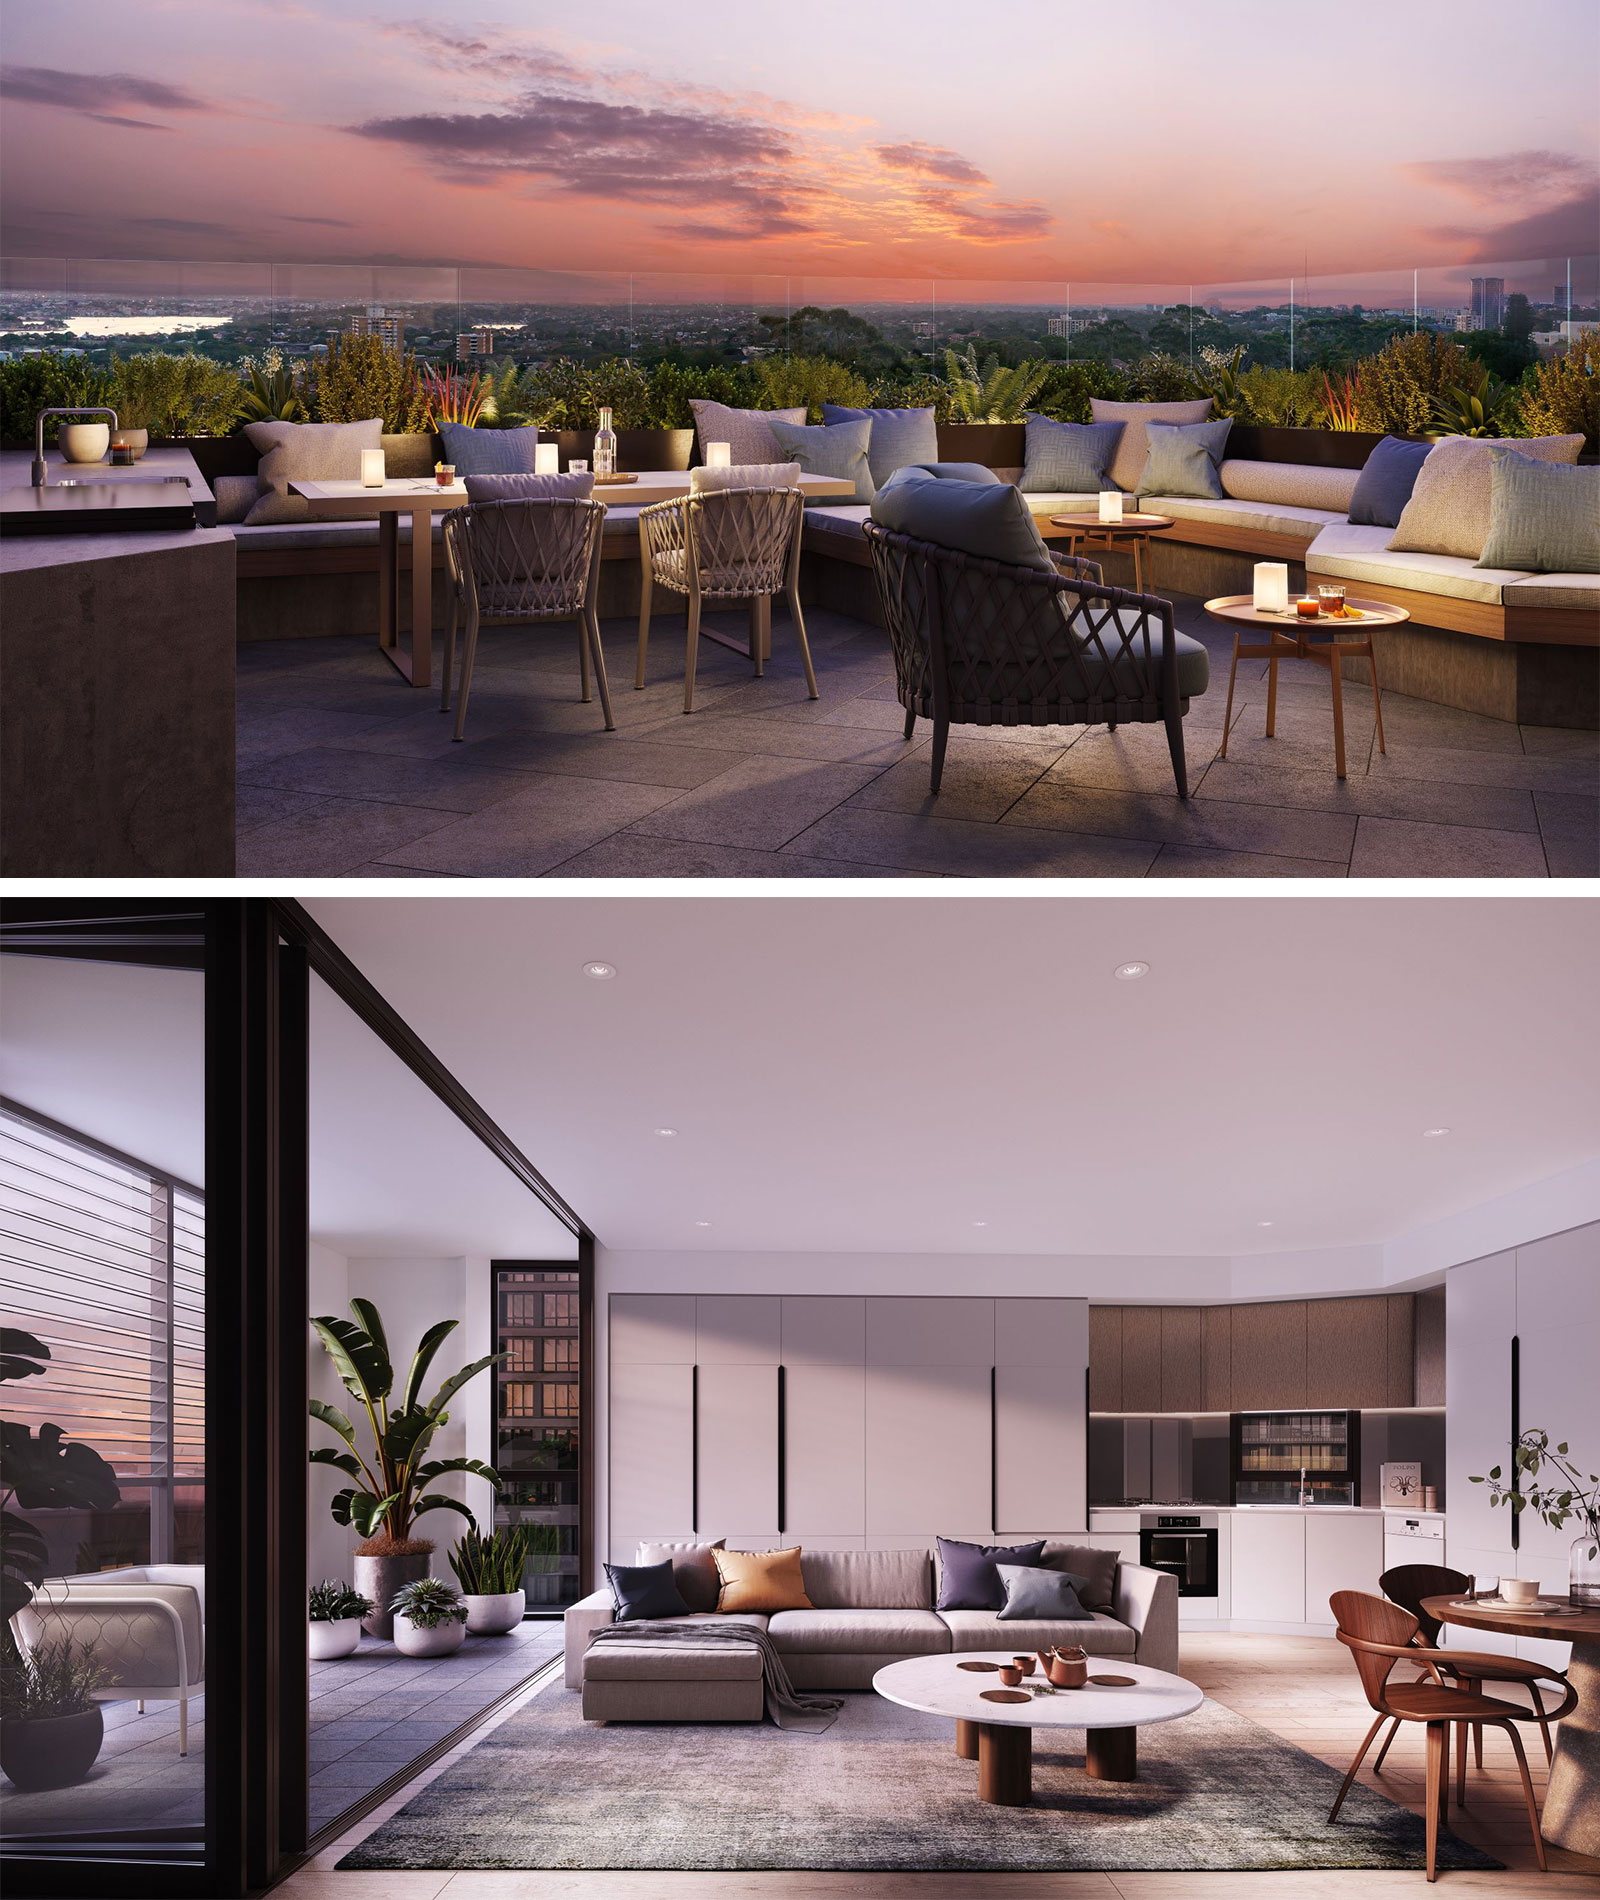 The project will feature harbour views, two storey penthouses and communal rooftop.